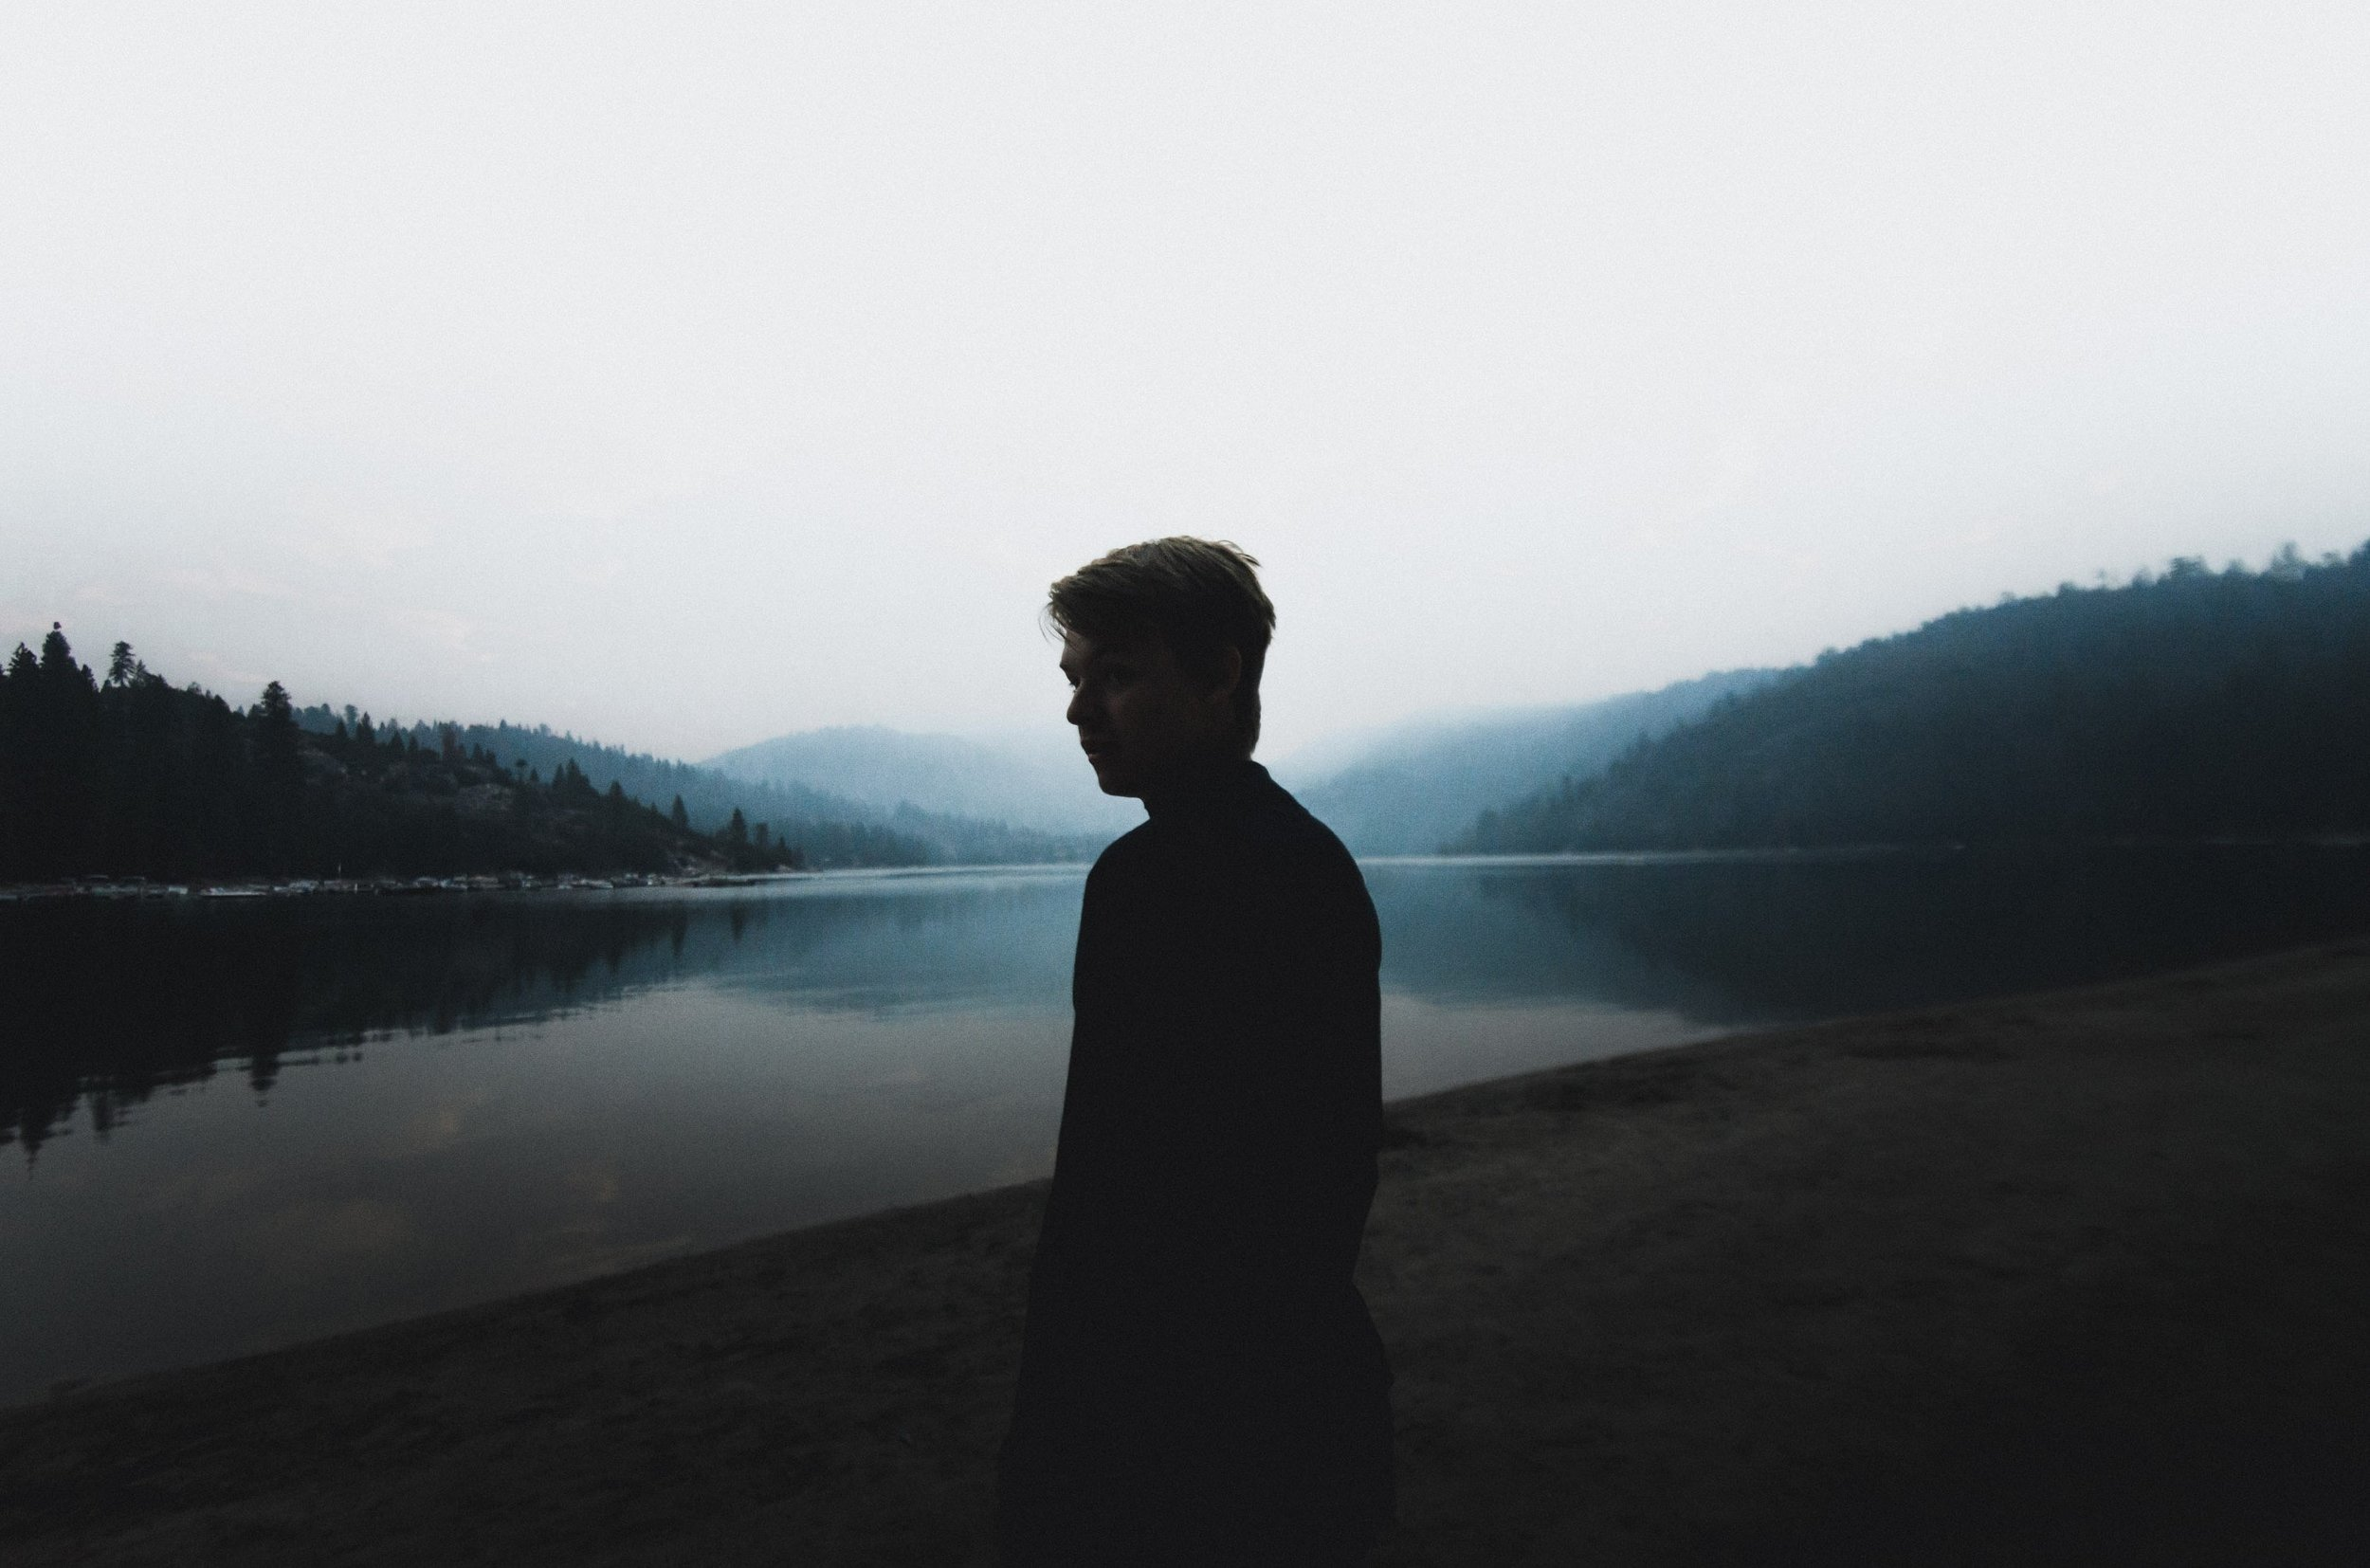 silhouette of man by water with mountains in background